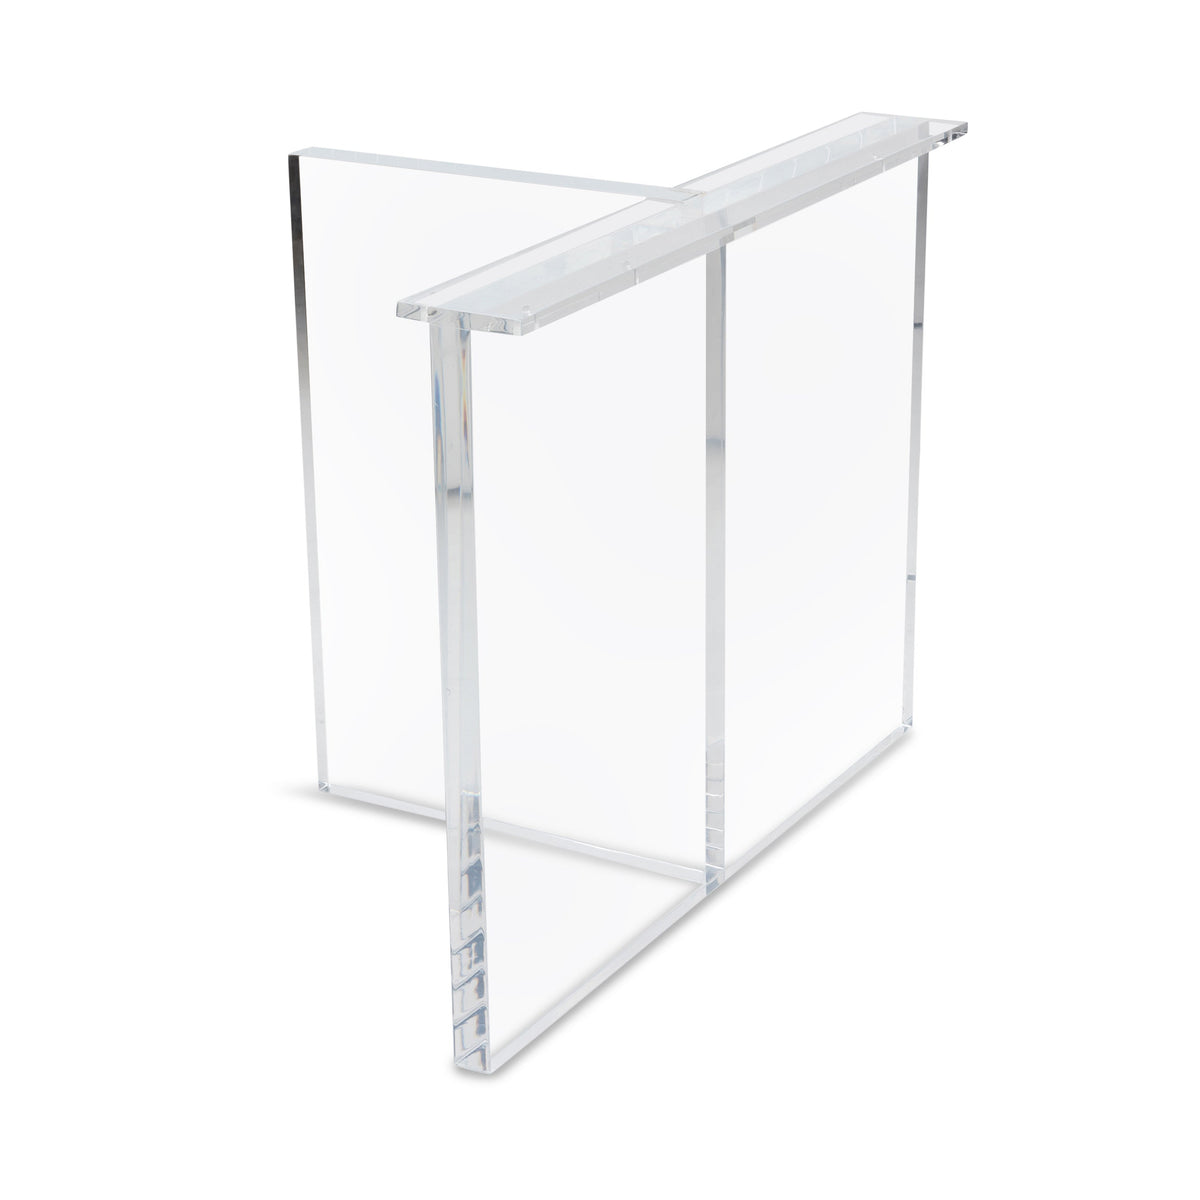 Lucite Criss Cross Base (Set of 2)